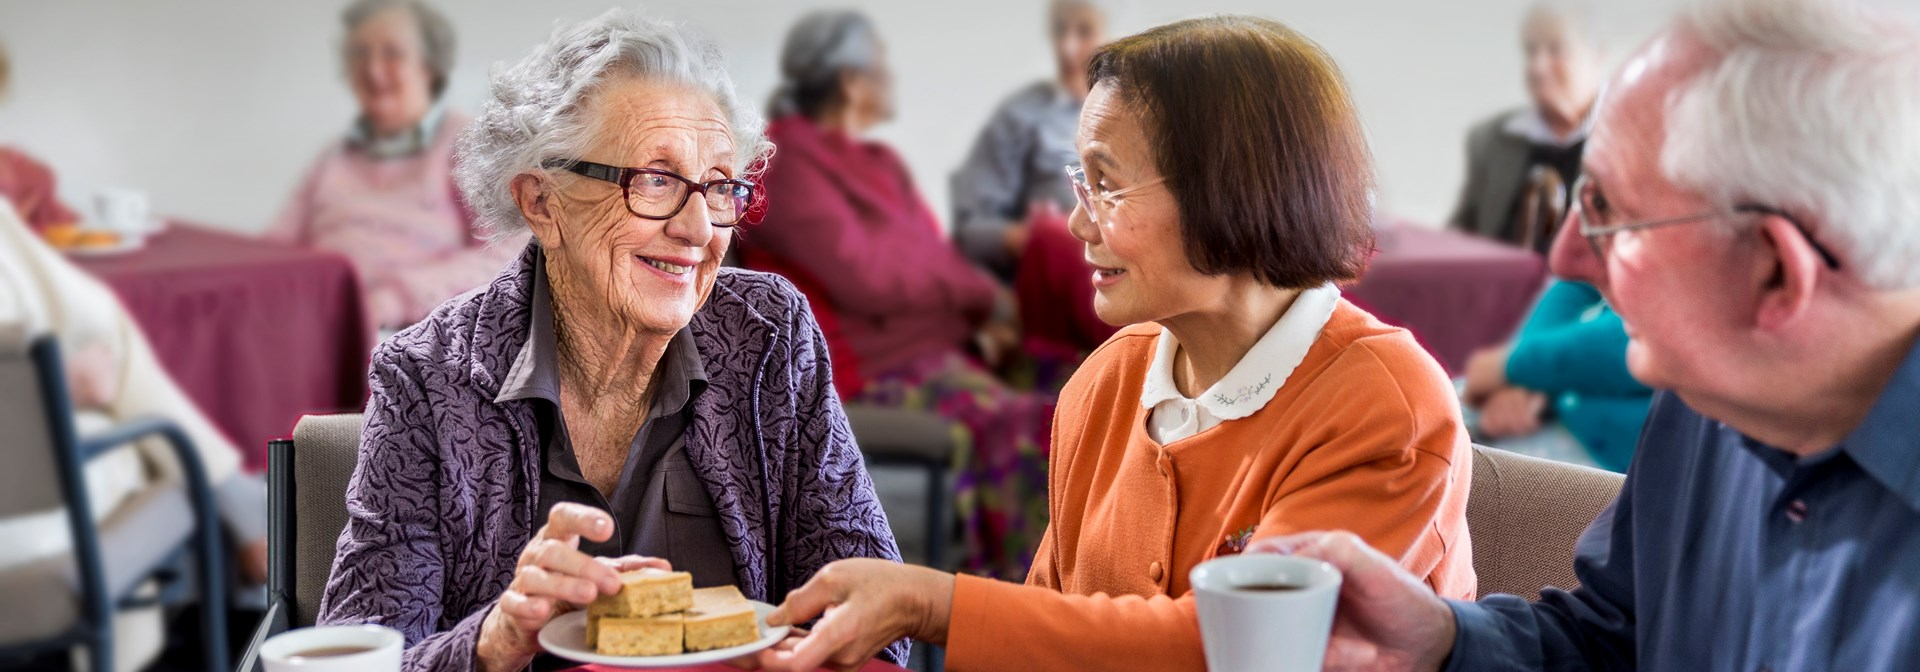 The Selwyn Foundations charitable outreach supports elders who are socially isolated or lonely